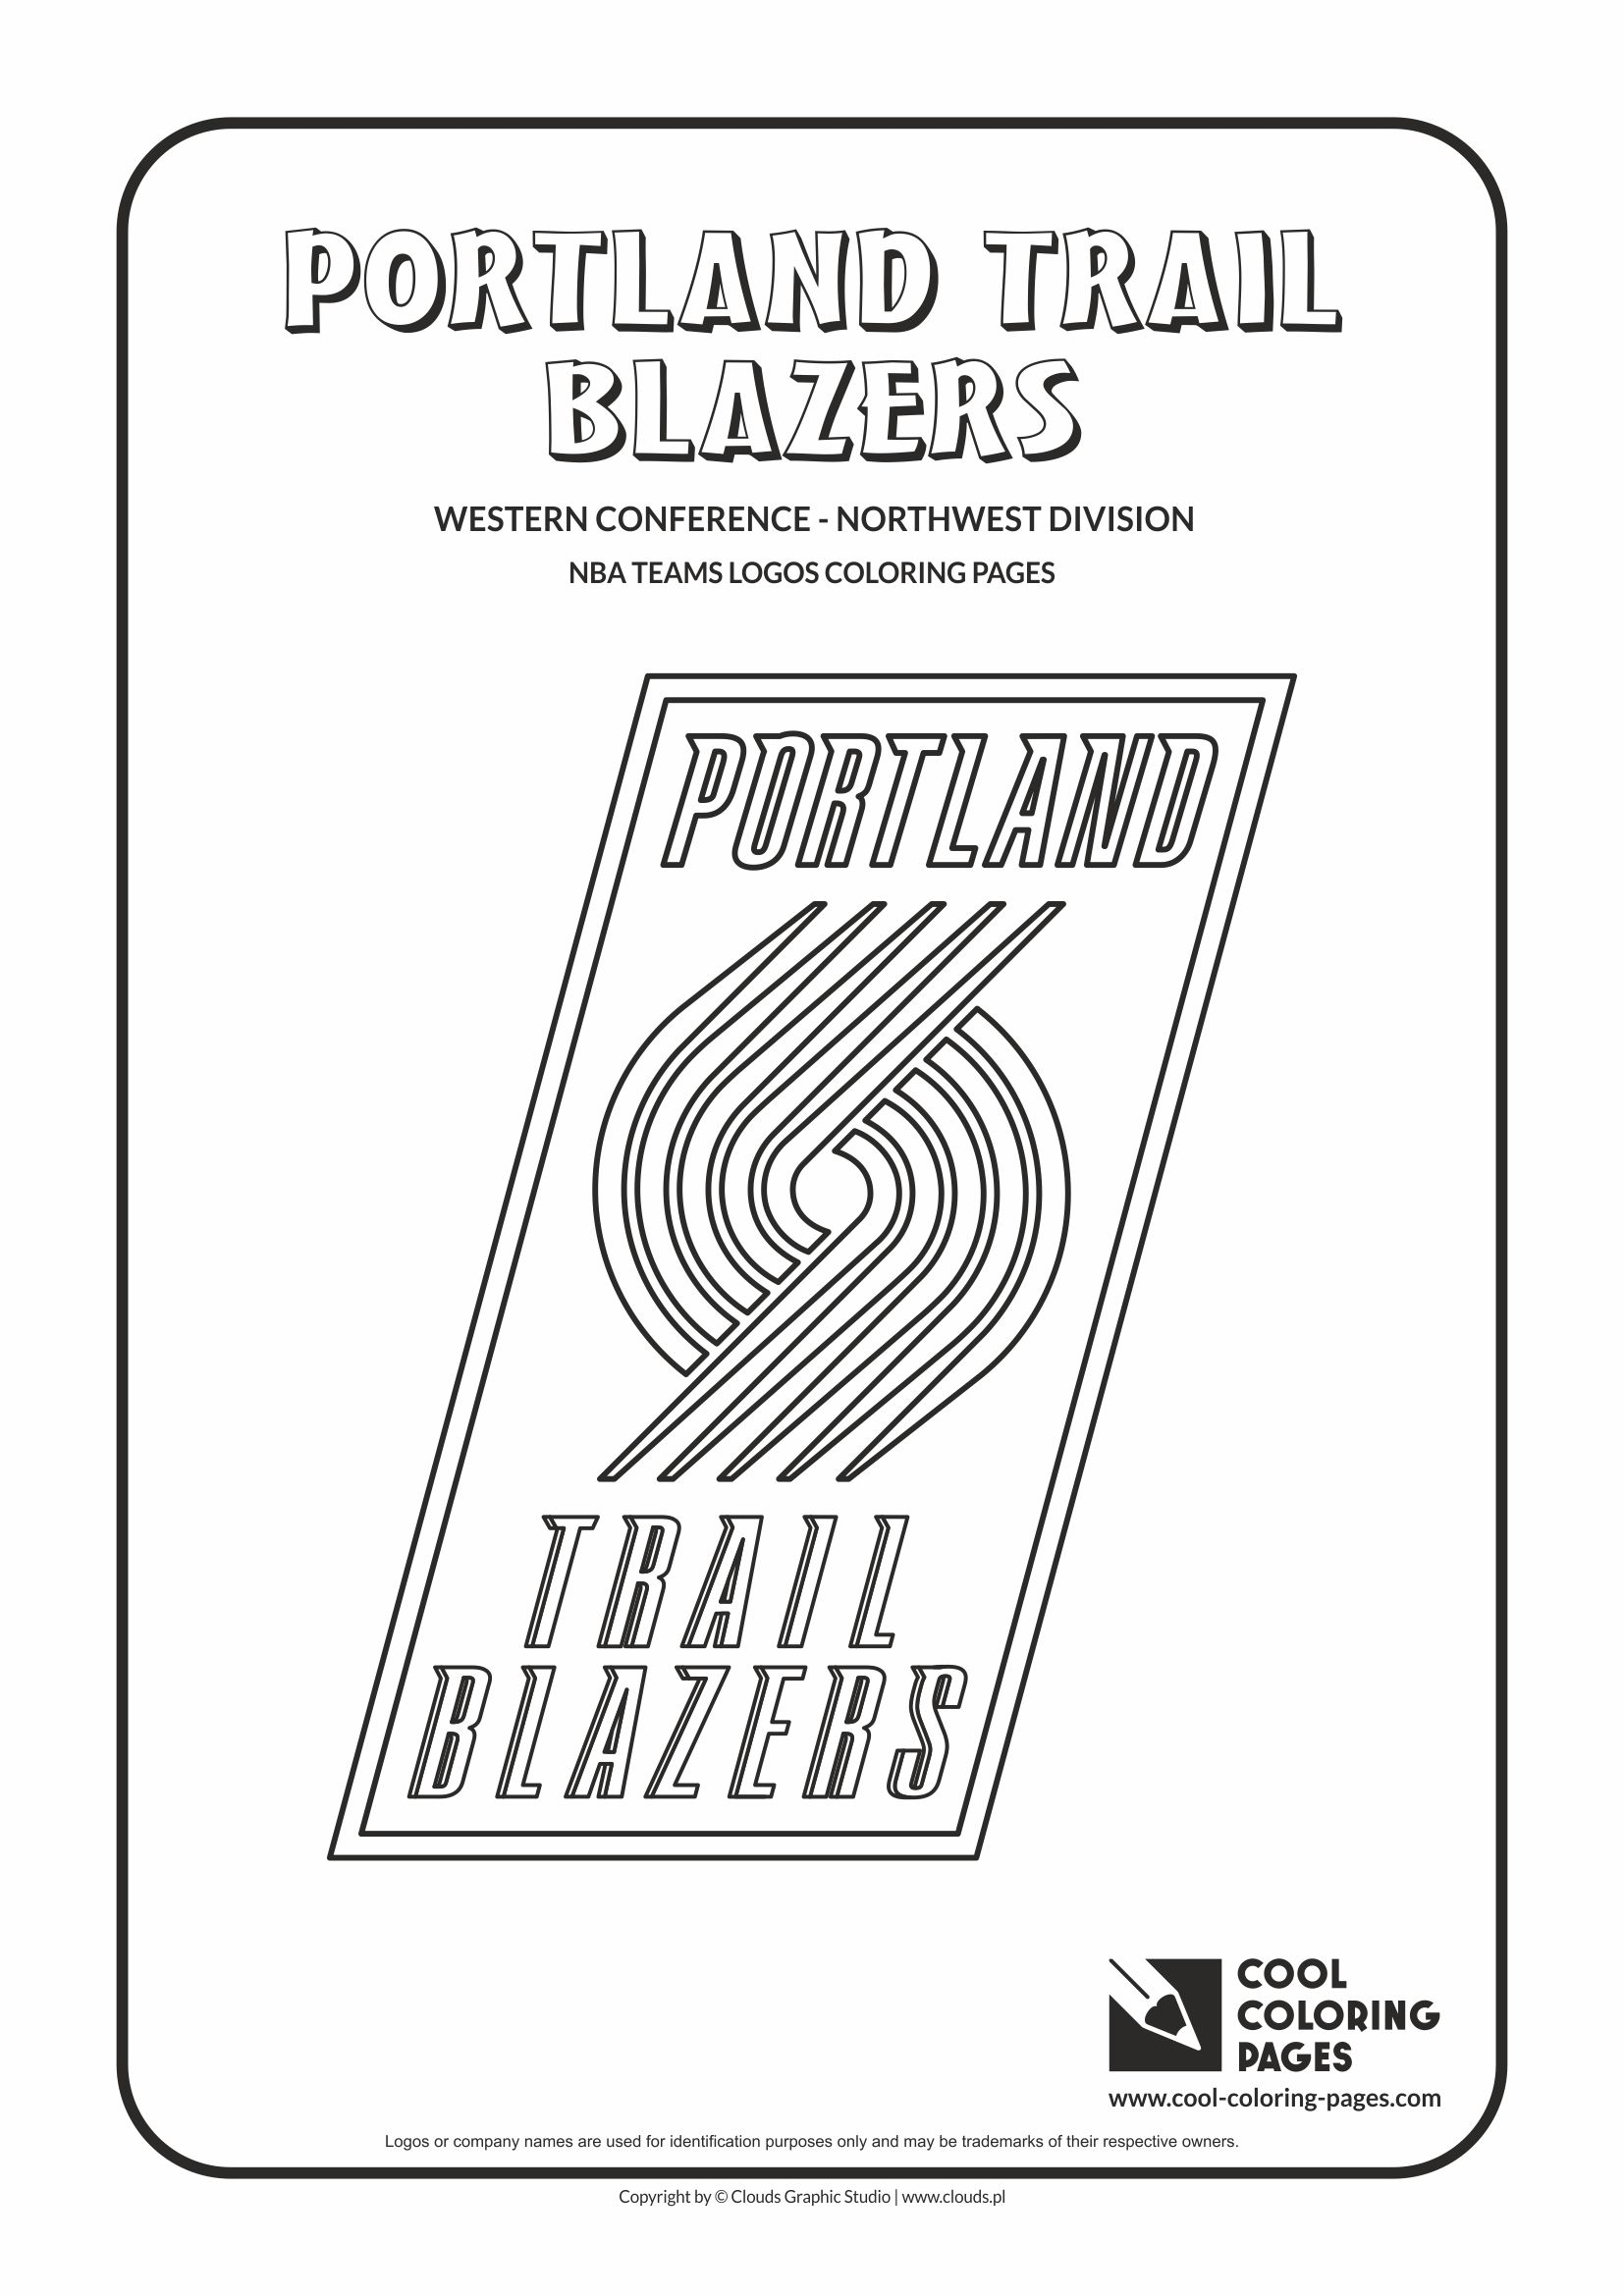 Cool Coloring Pages NBA teams logos